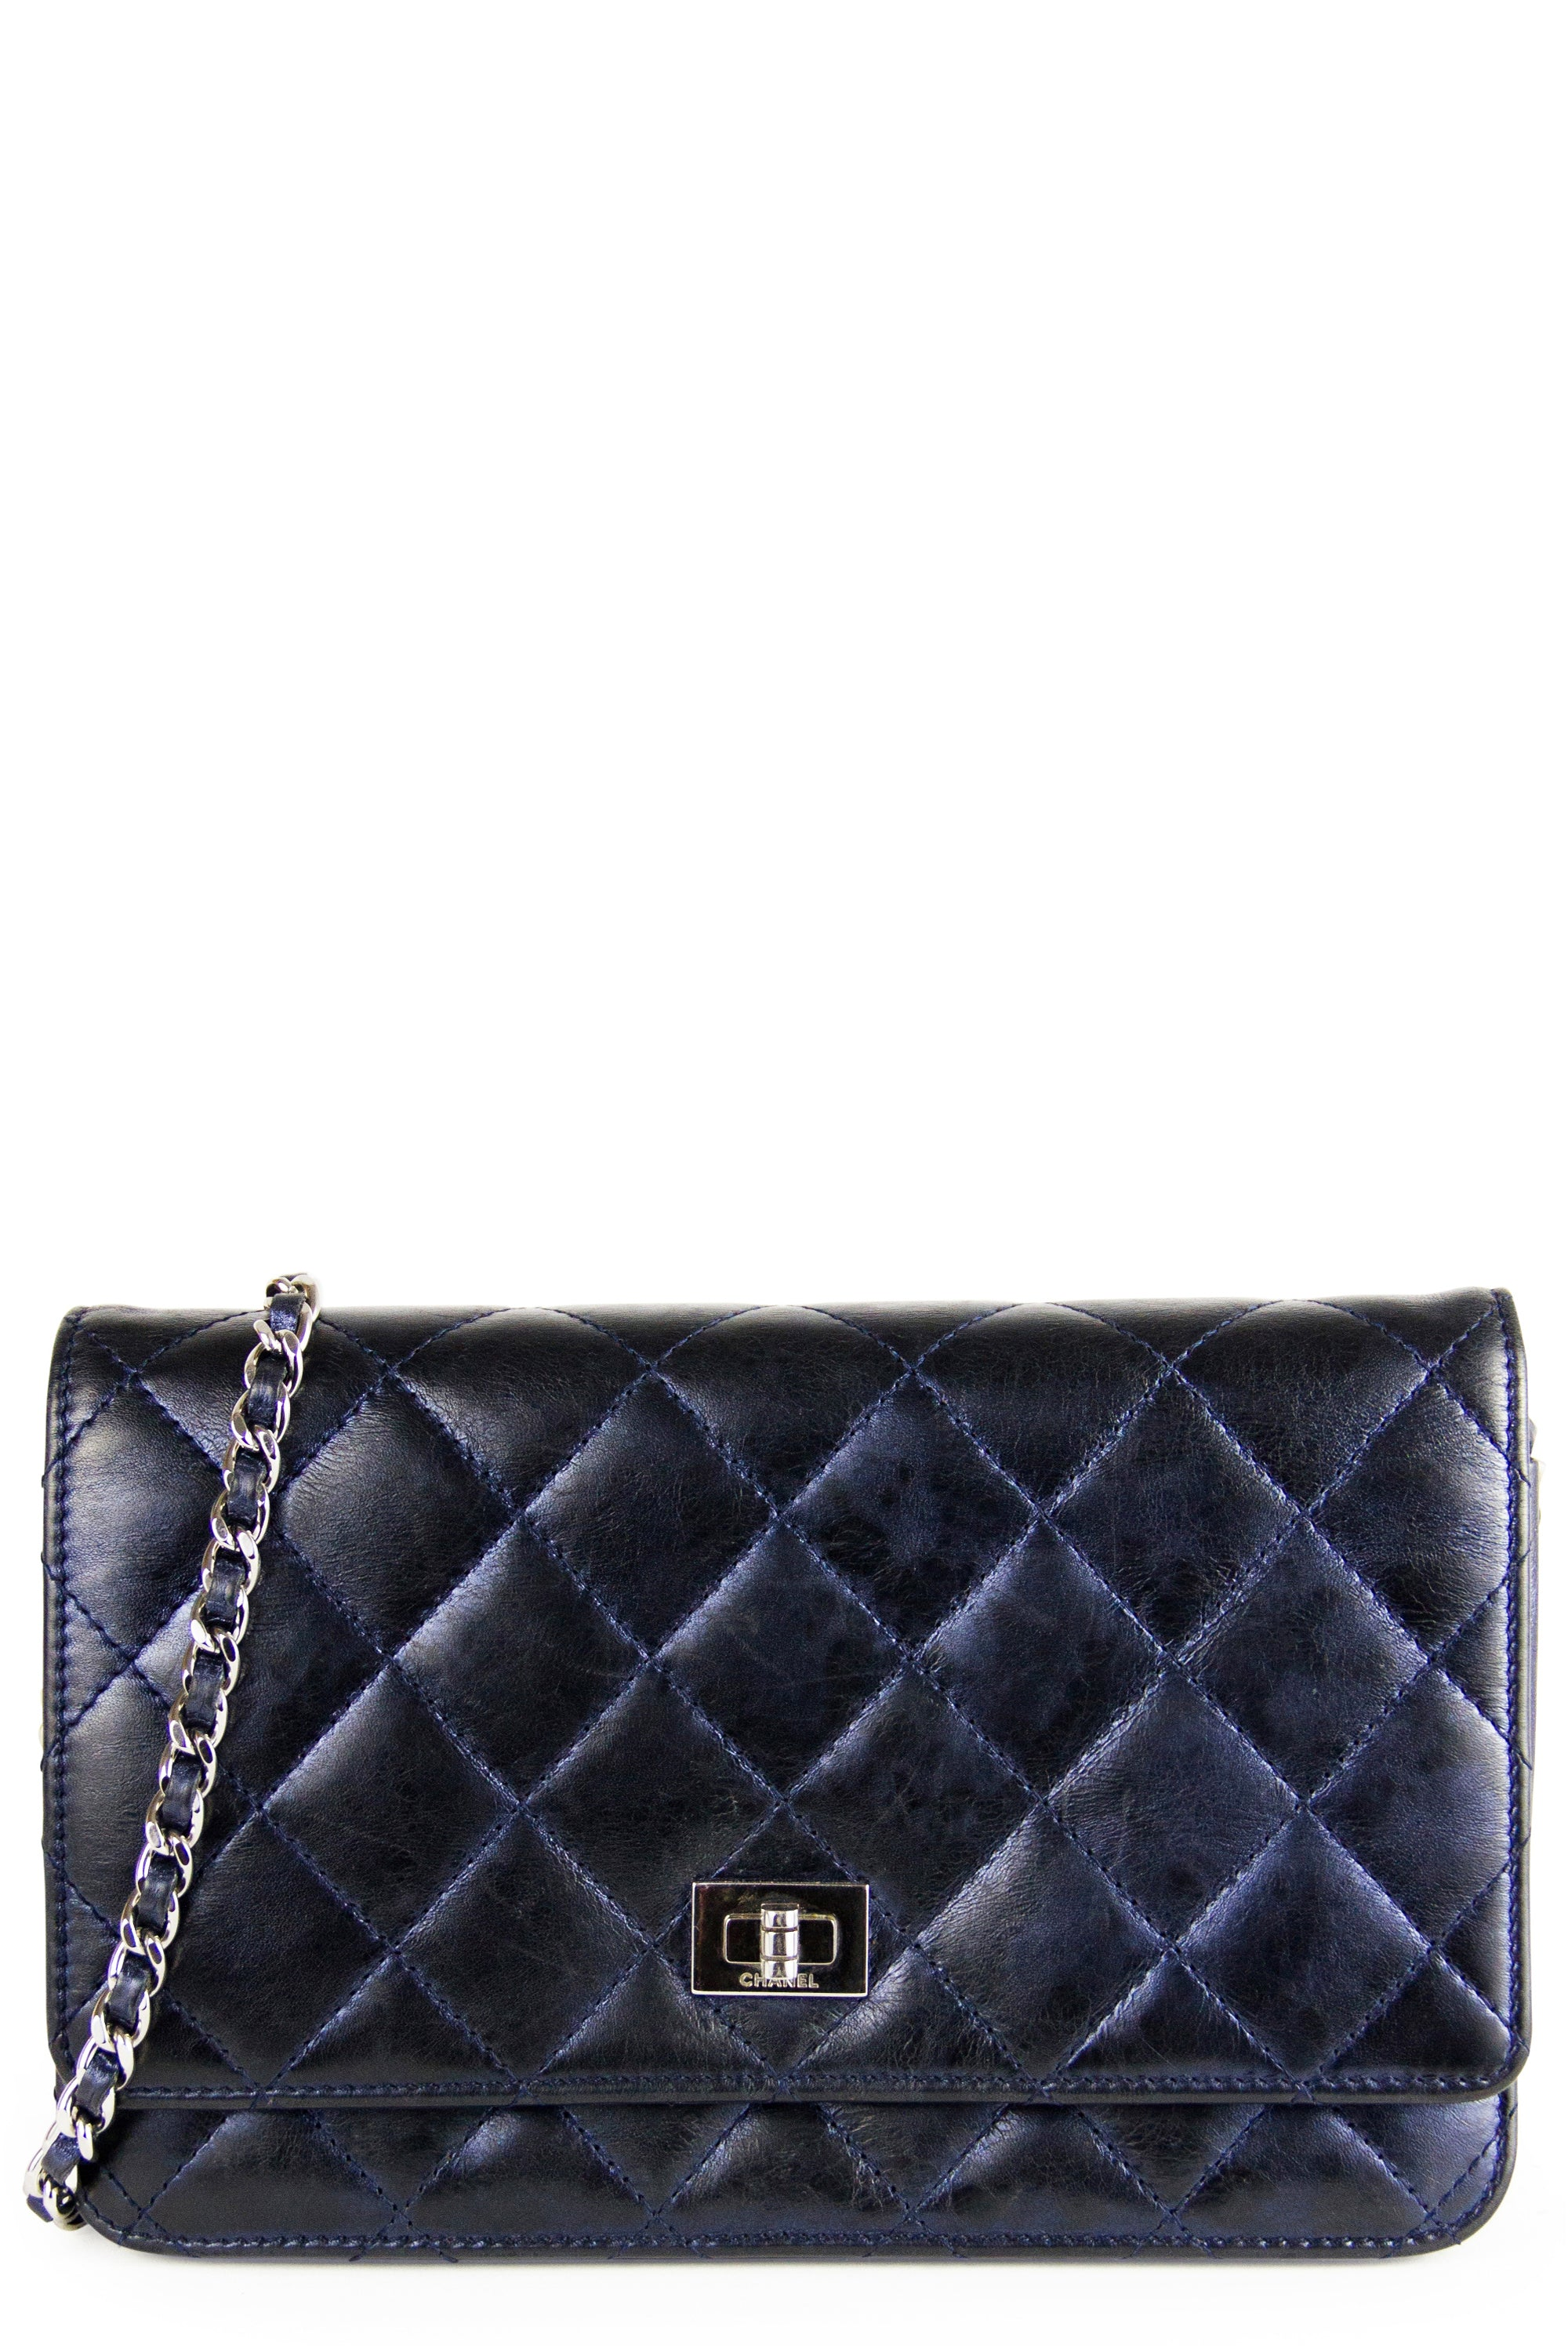 Chanel Wallet On Chain 2.55 Frontansicht Navy Blue